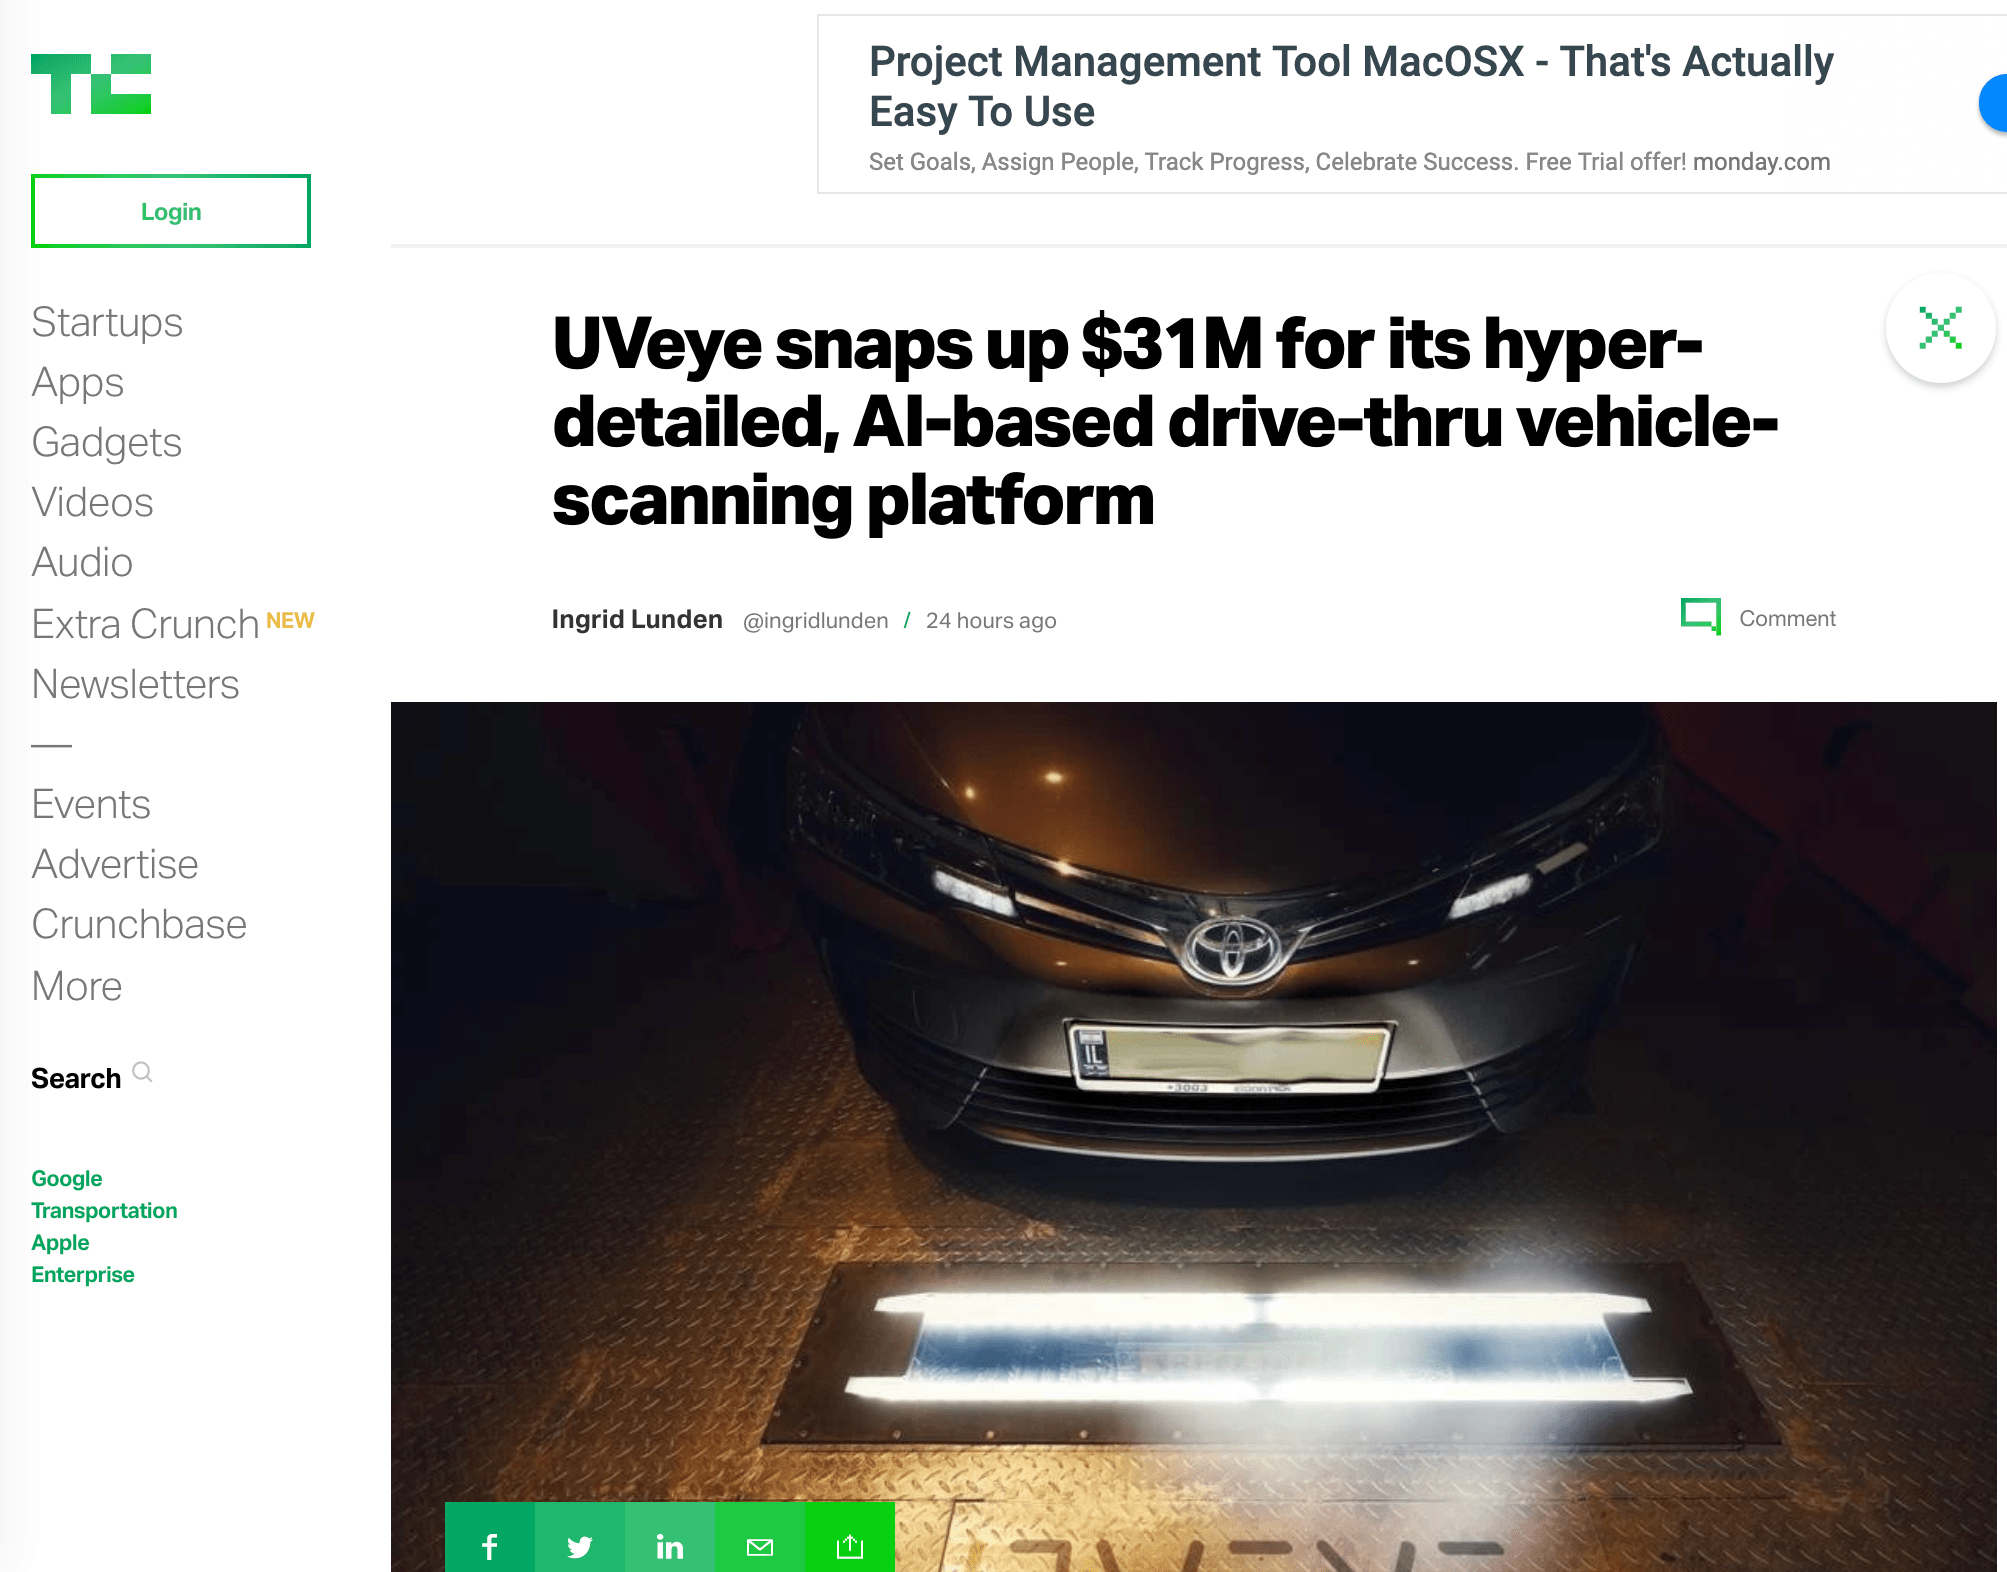 UVeye snaps up $31M for its hyper-detailed, AI-based drive-thru vehicle-scanning platform